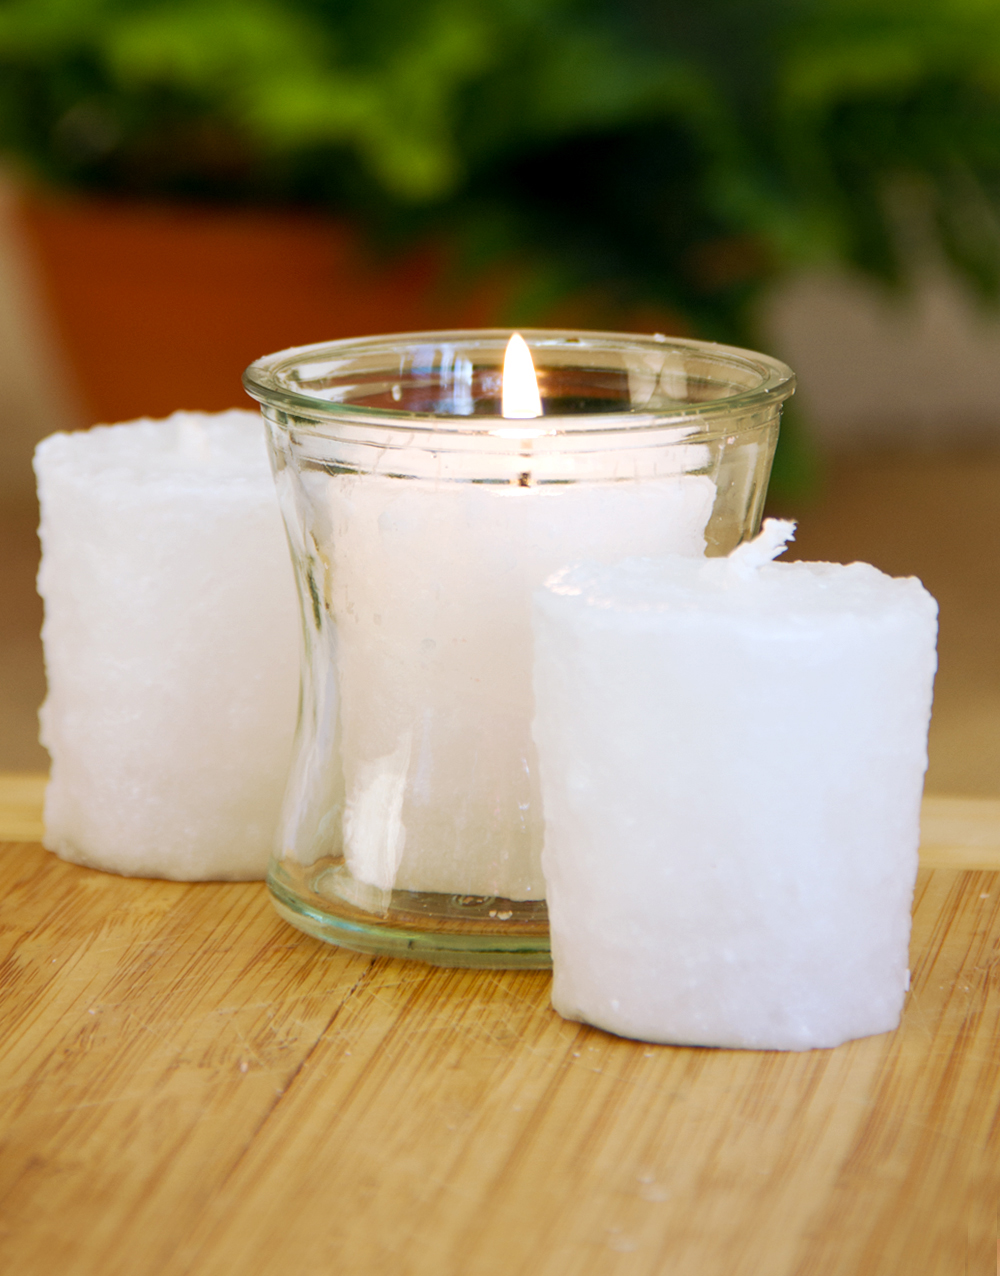 Vanilla Stardust 3 Pack Votive Candles